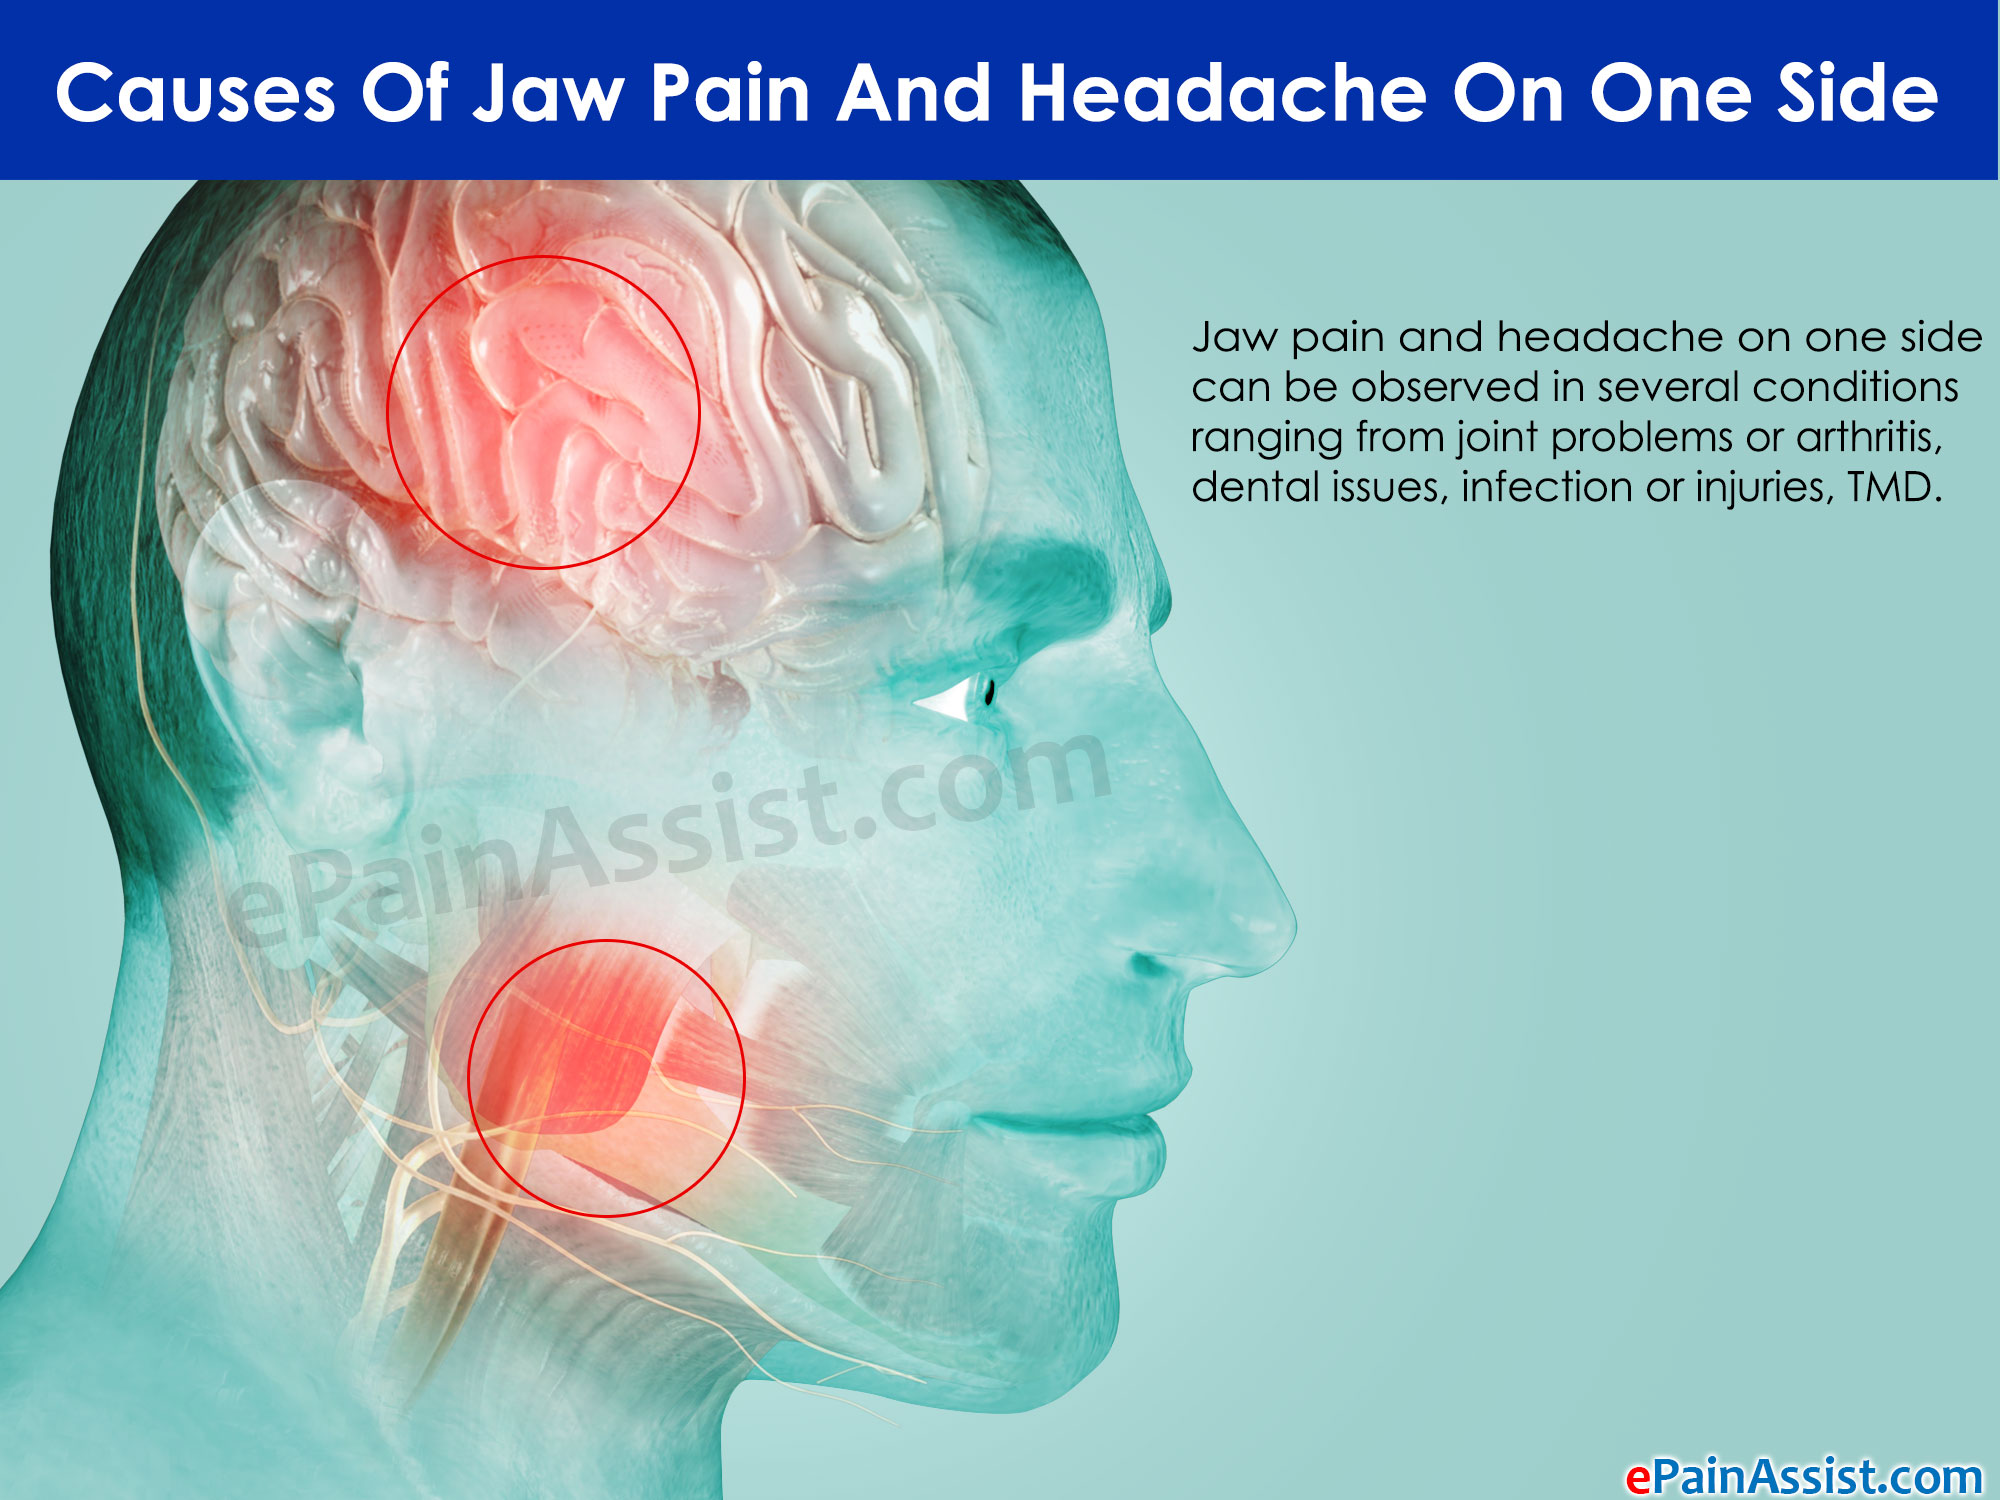 Causes Of Jaw Pain And Headache On One Side